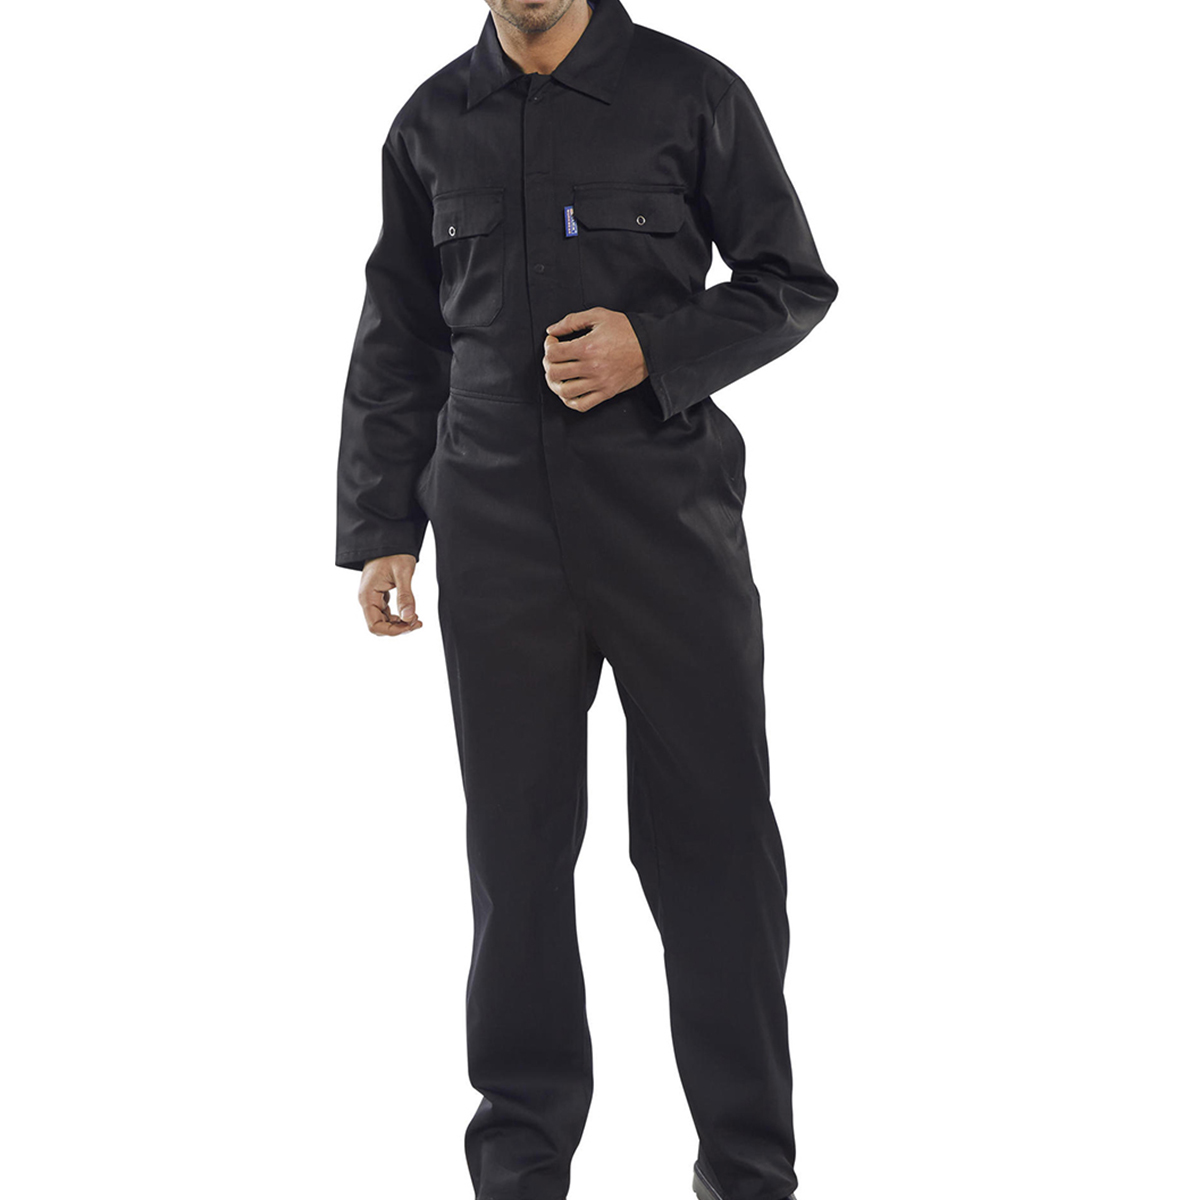 Coverall Basic with Popper Front Opening Polycotton Extra Large Navy Ref RPCBSN48 *Approx 3 Day Leadtime*